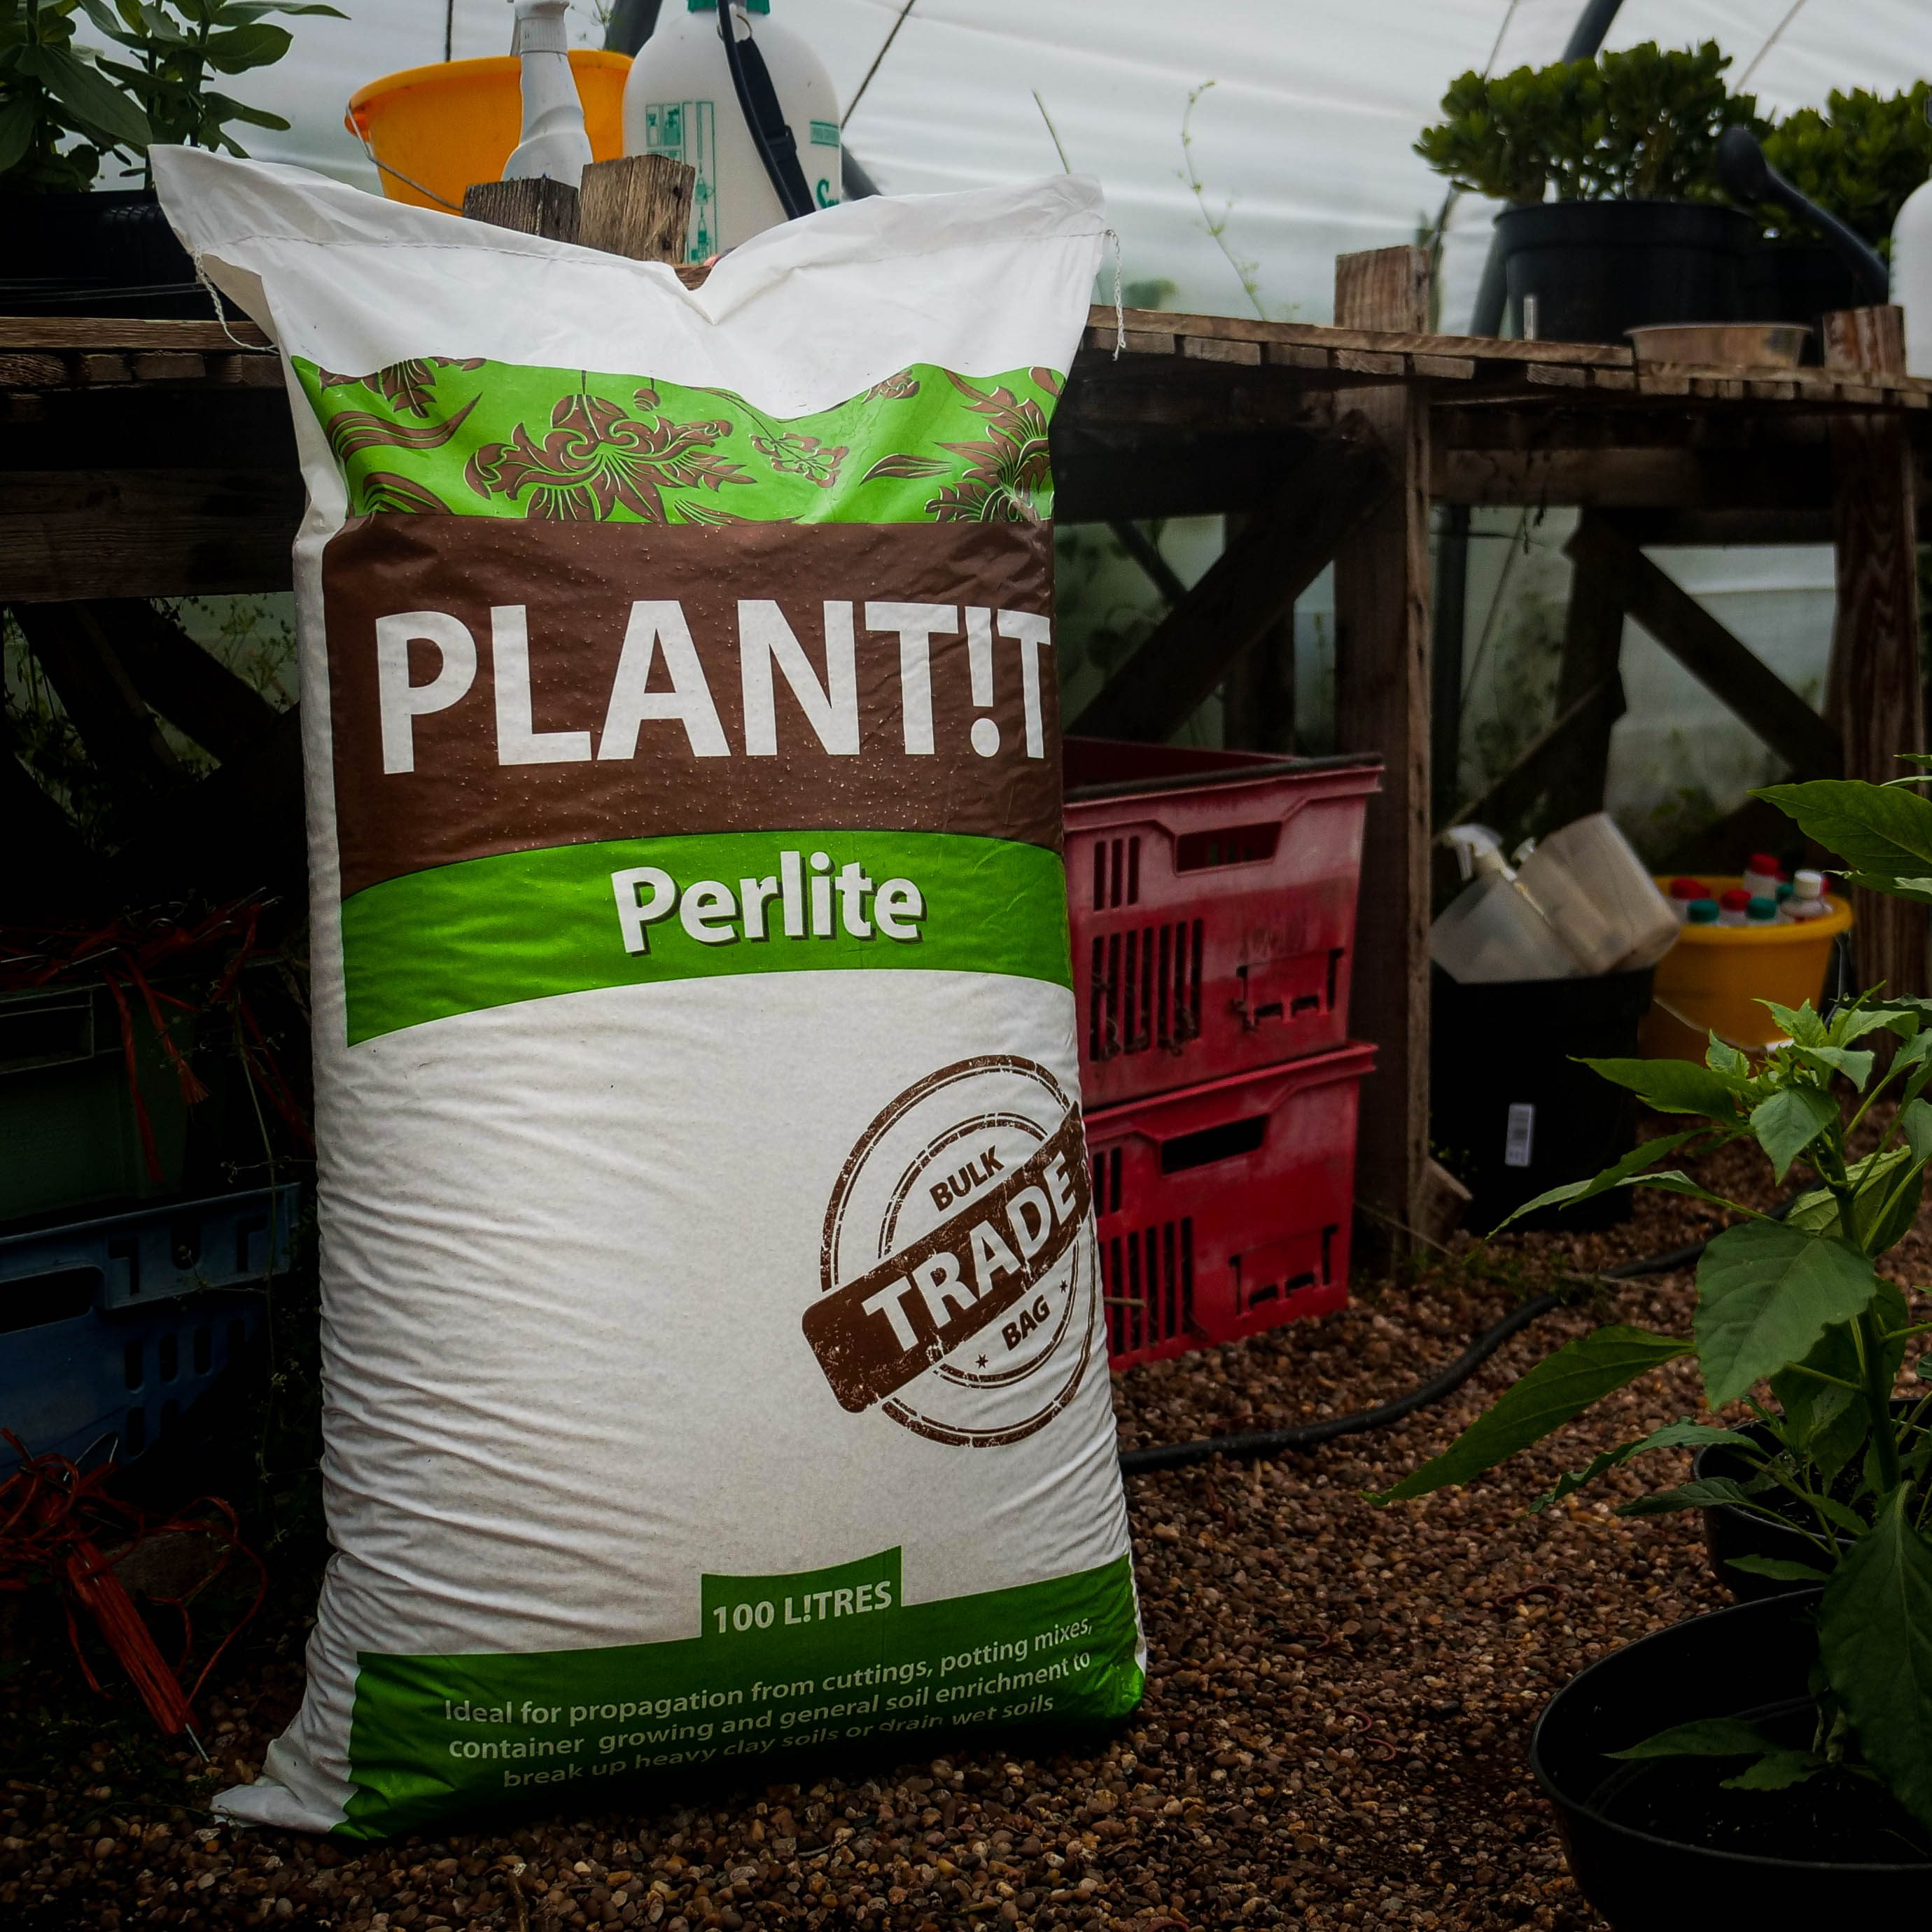 PLANT!T Perlite 100L Hydroponics Natural PH Neutral Growing Medium